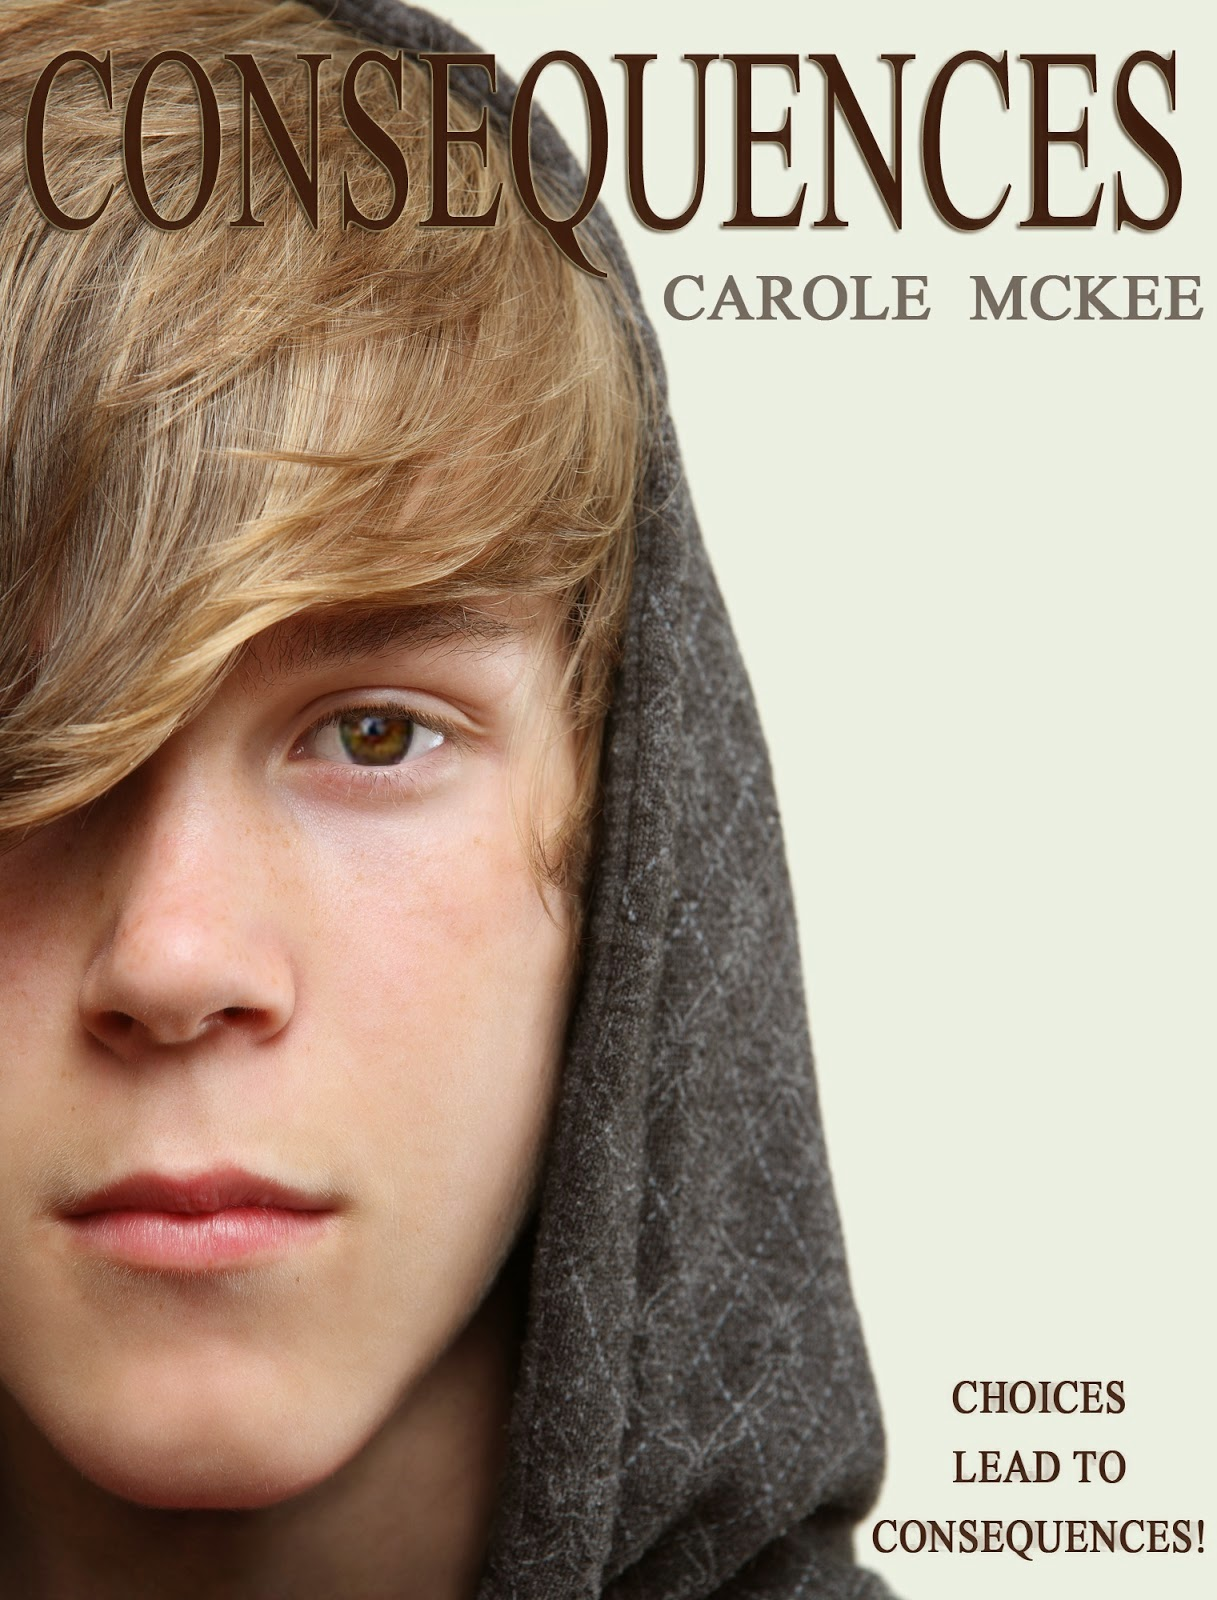 http://www.amazon.com/Consequences-Choices-Book-Carole-McKee-ebook/dp/B00CLY267I/ref=sr_1_3?s=books&ie=UTF8&qid=1405381141&sr=1-3&keywords=Carole+Mckee